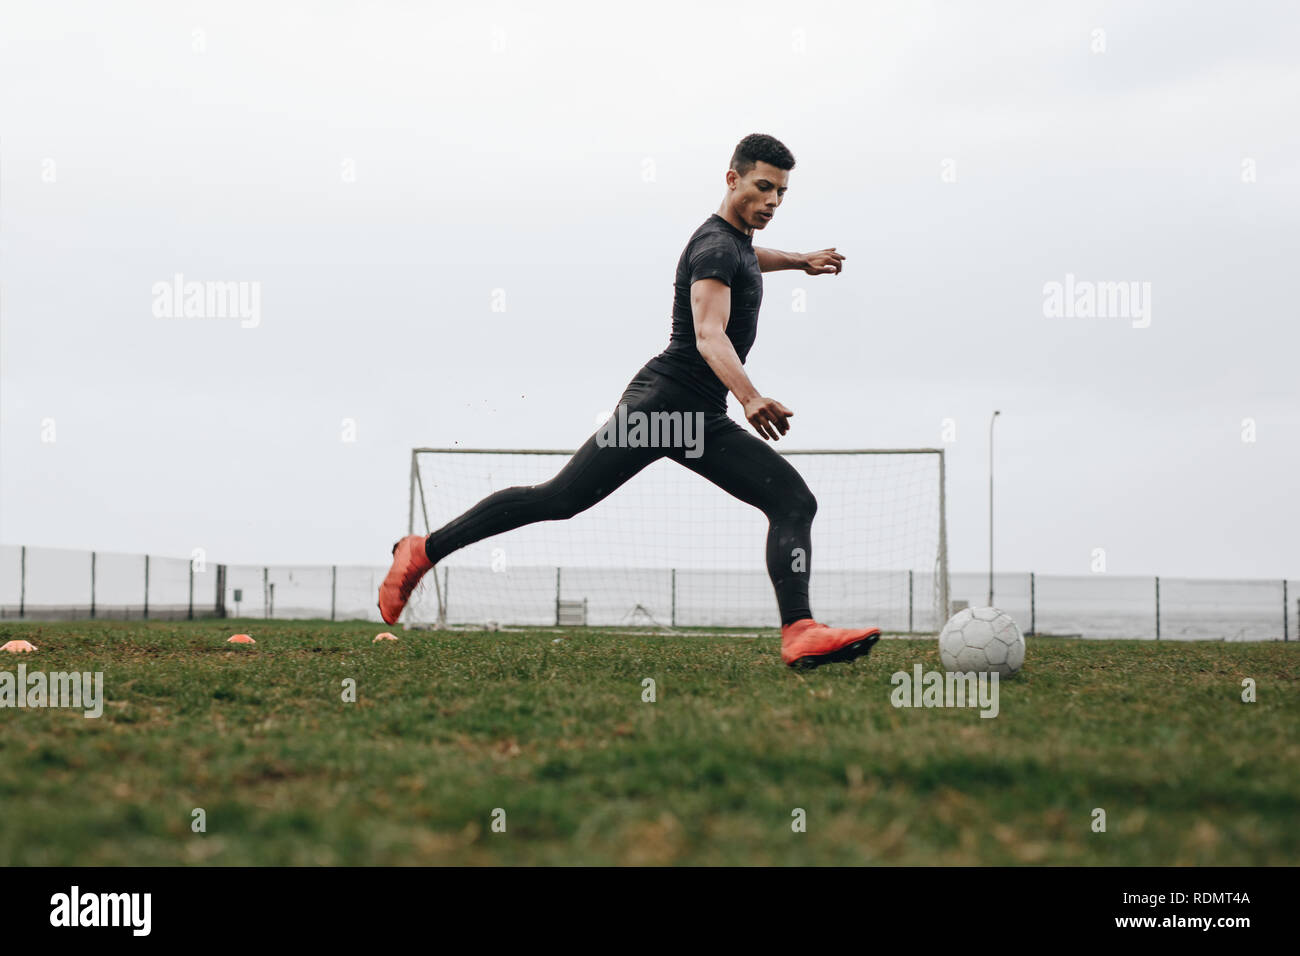 Soccer player in position to kick a football. Footballer practicing his game on field early in the morning. - Stock Image